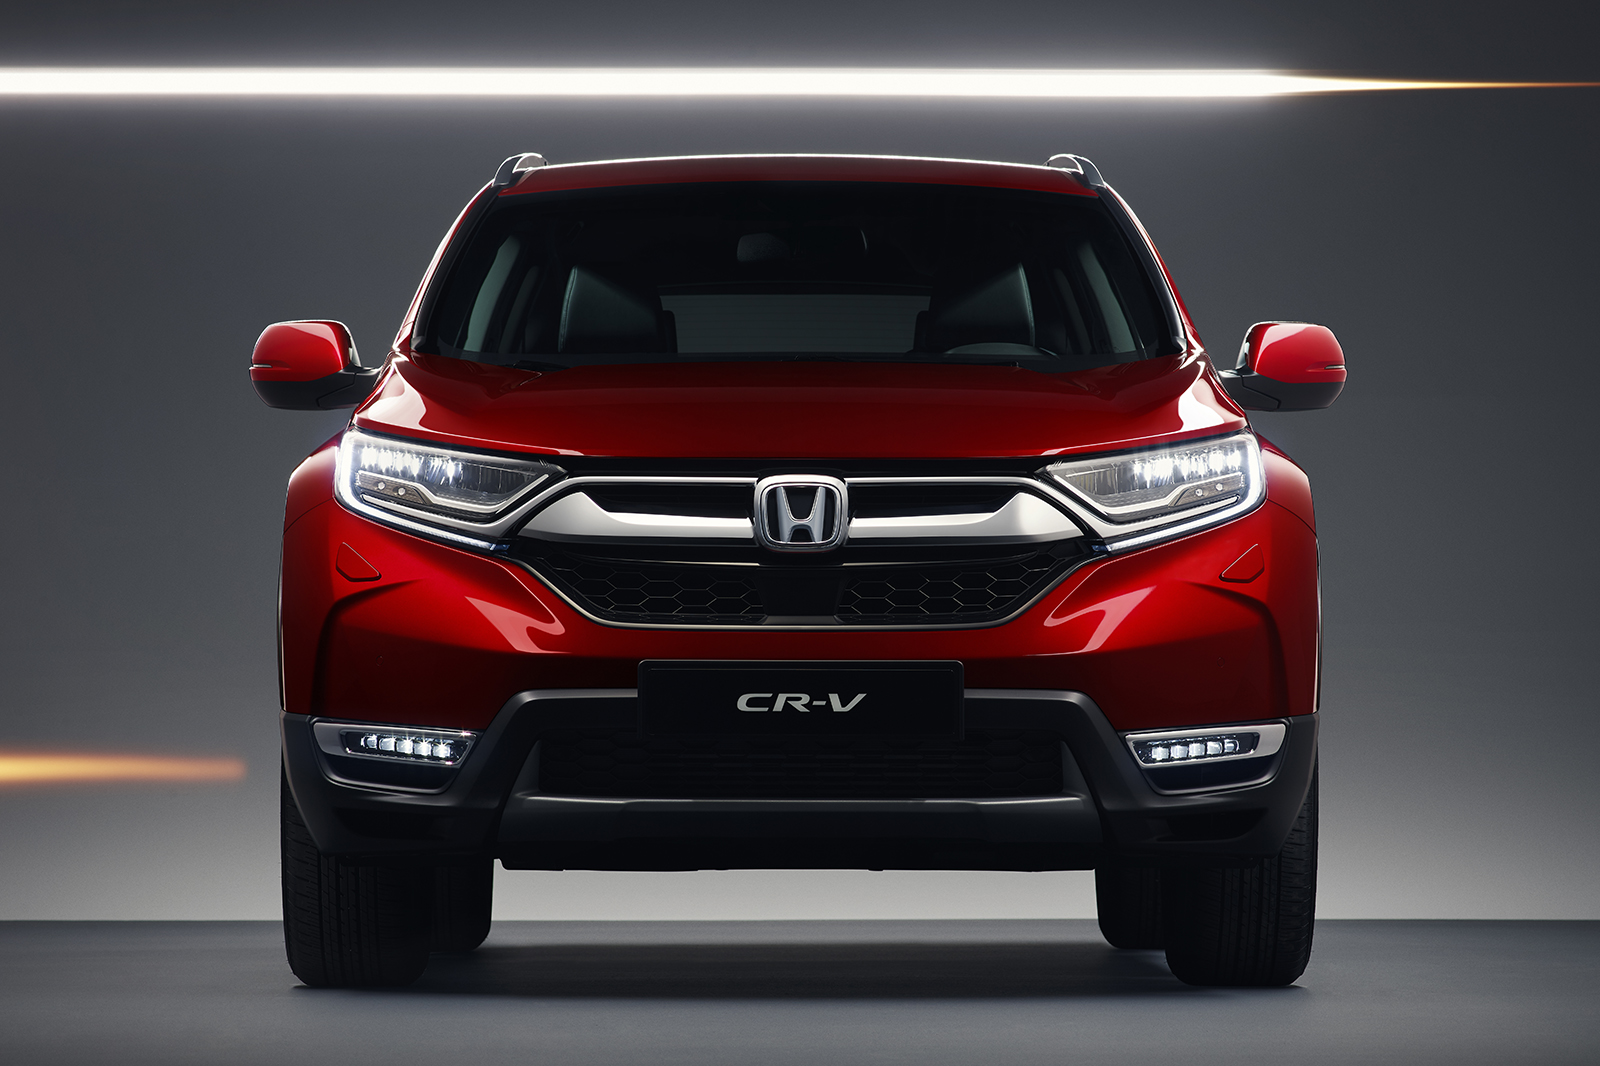 2018 honda cr v revealed in european specification autocar. Black Bedroom Furniture Sets. Home Design Ideas